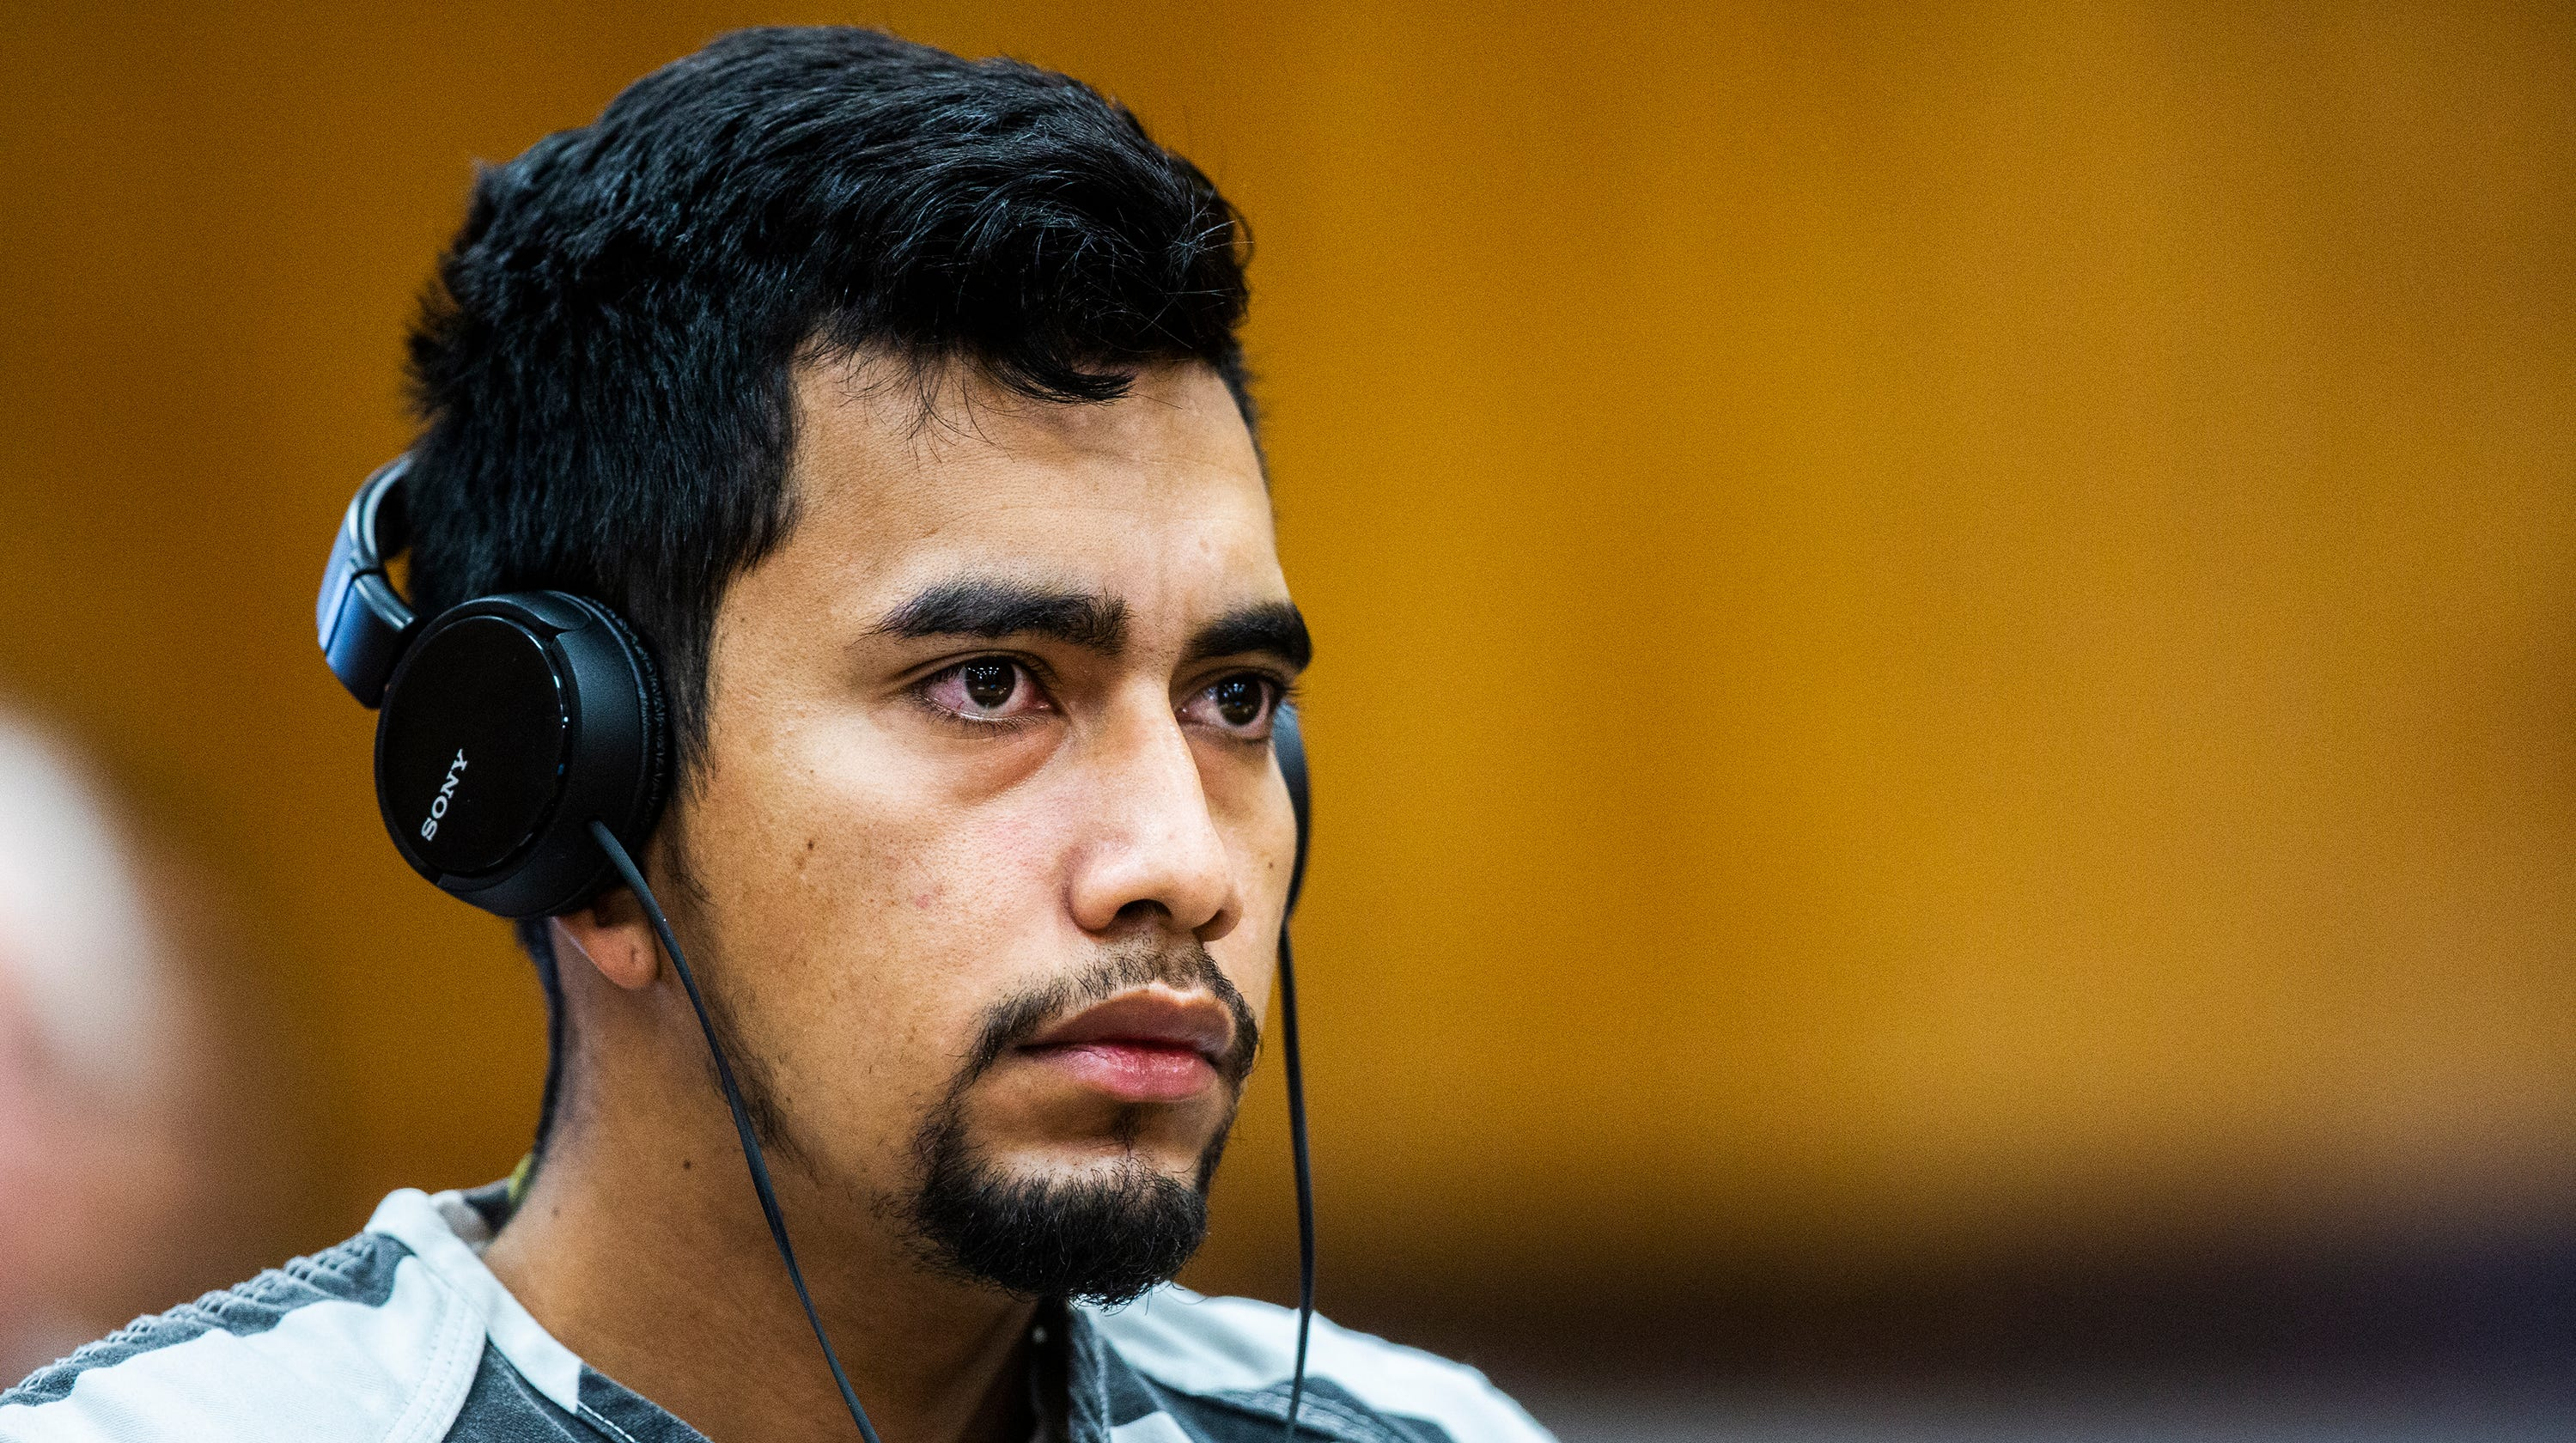 Cristhian Bahena Rivera, 24, pleads not guilty to the charge of first-degree murder in the death of Mollie Tibbetts on Wednesday, Sept. 19, 2018, at the Poweshiek County Courthouse in Montezuma.